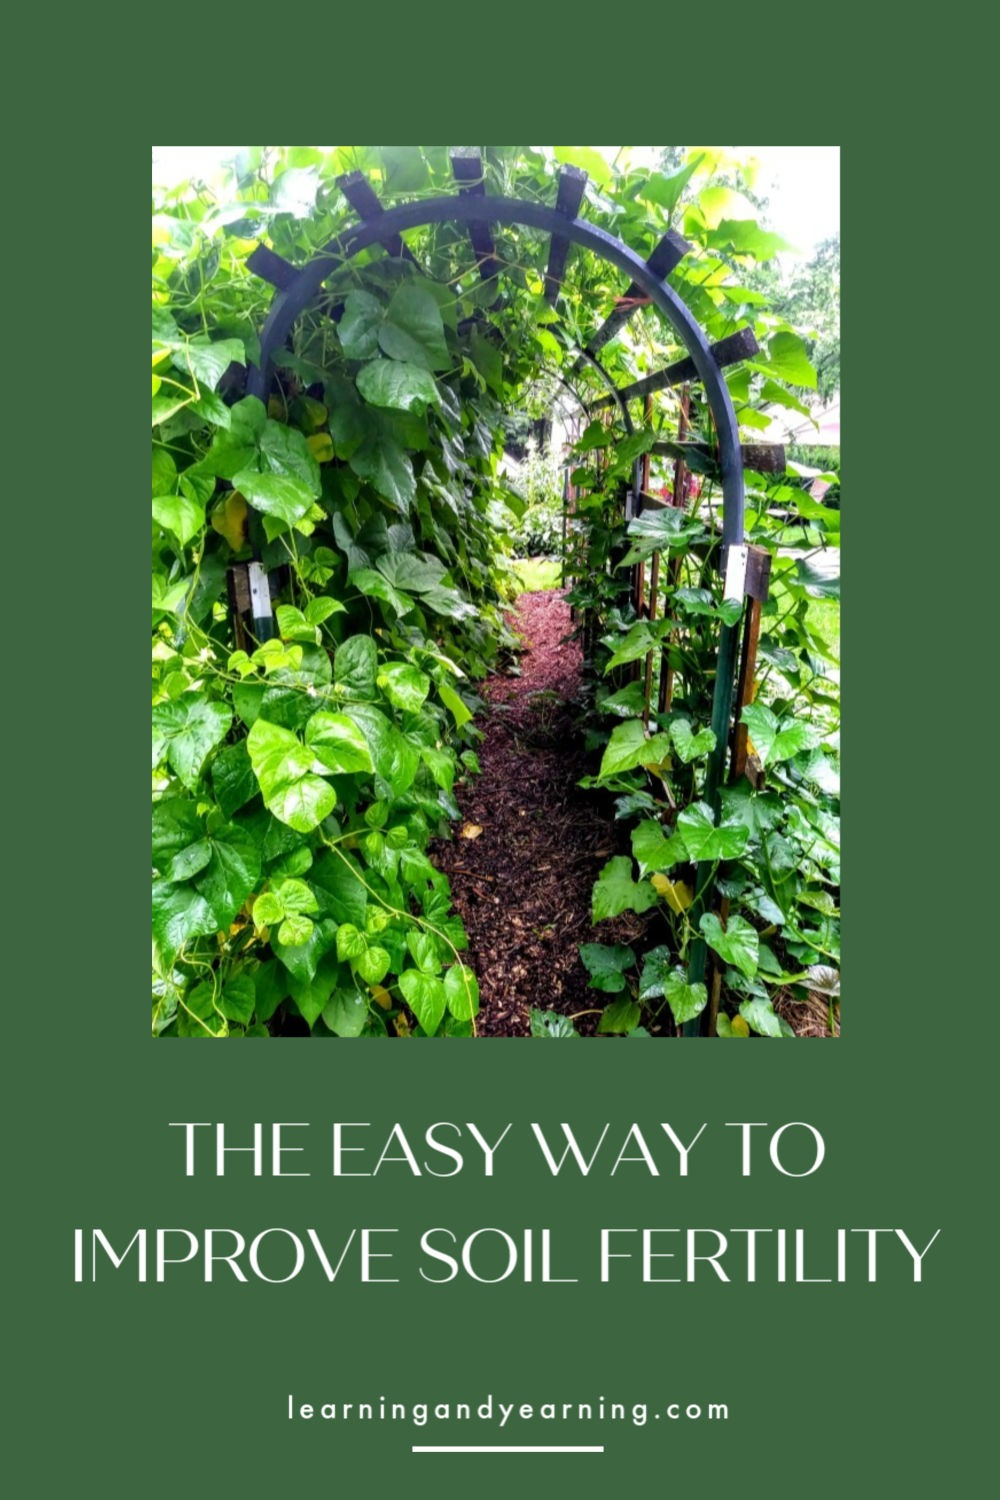 The easy way to improve soil fertility!